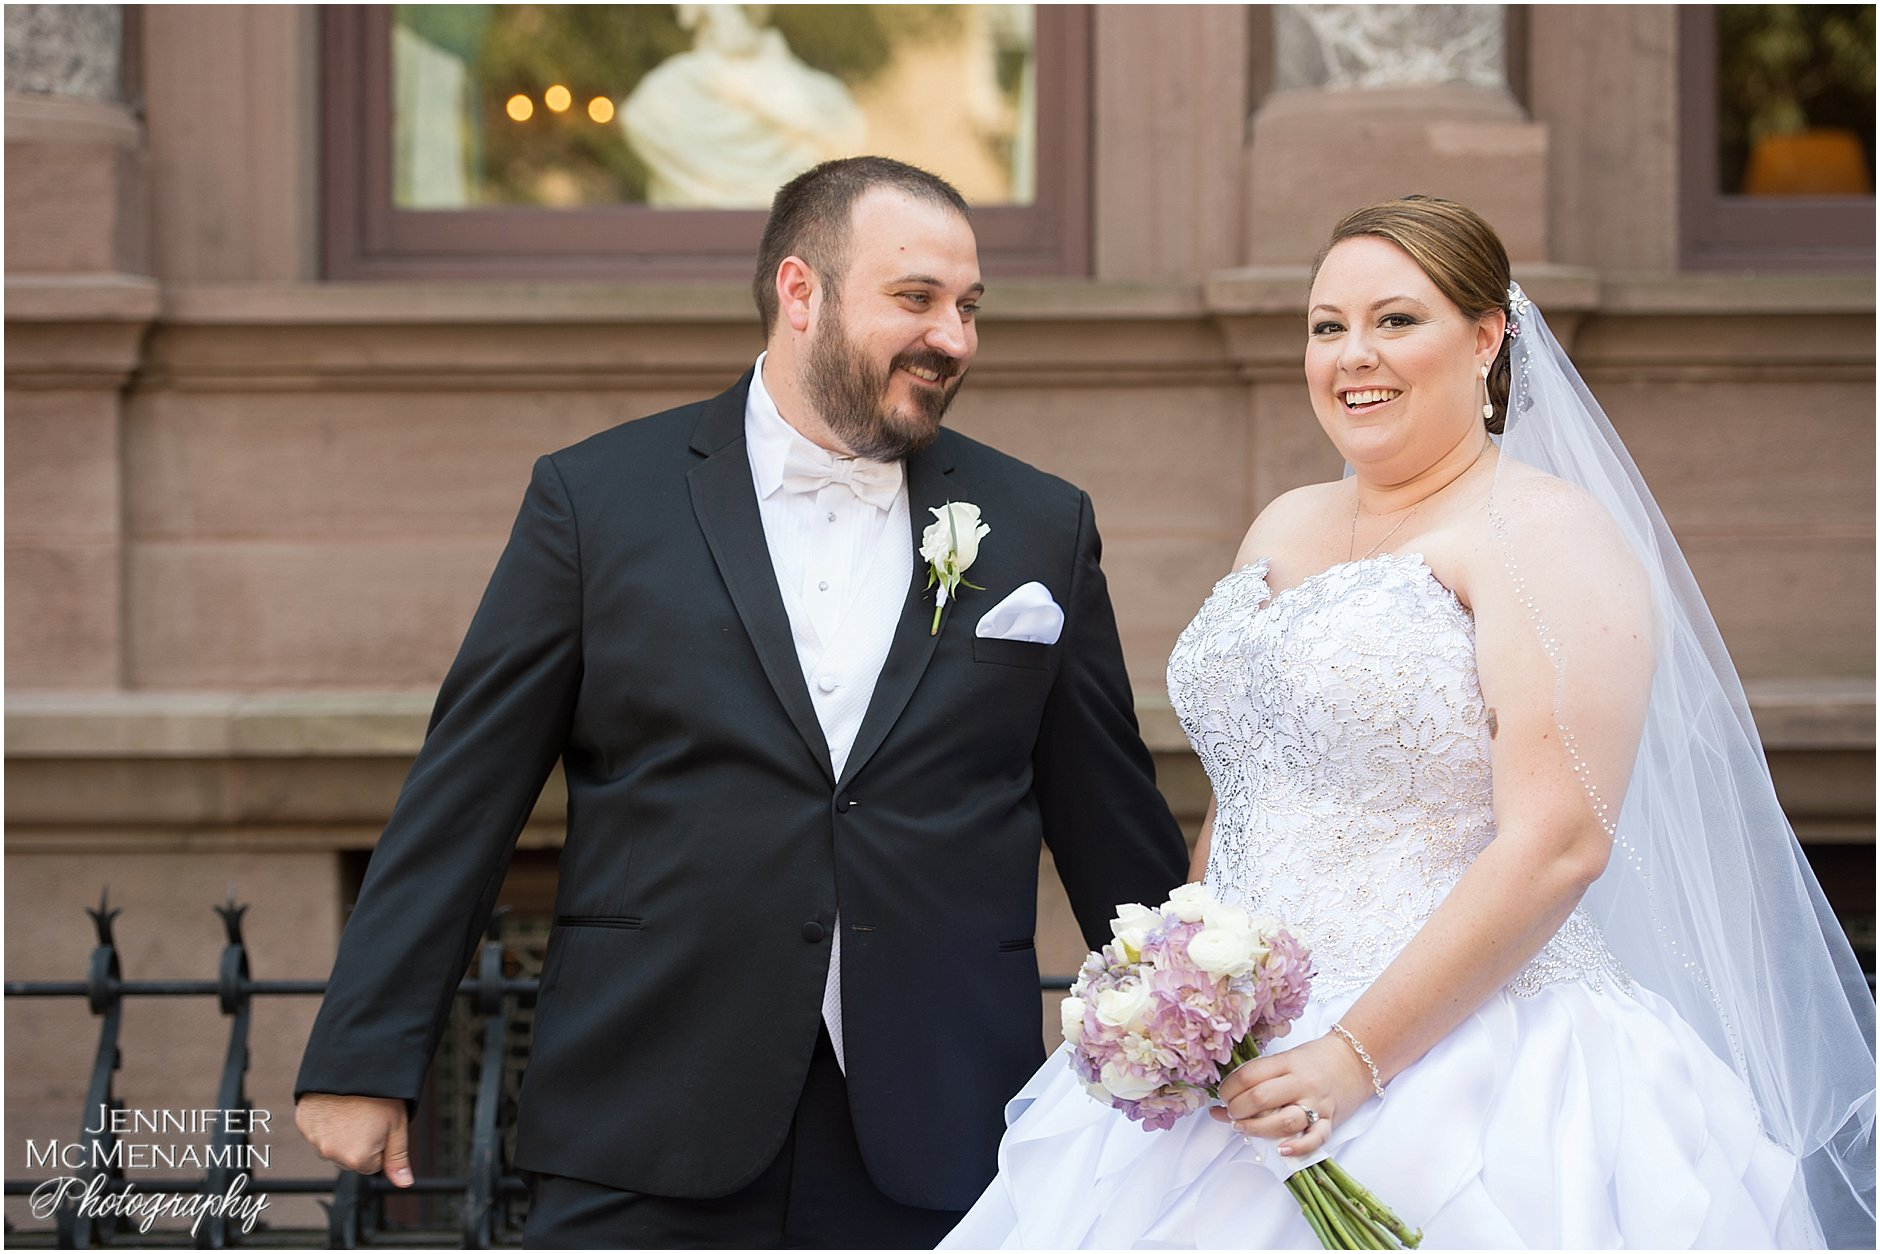 006-KinzlerShaull_00970_Jennifer-McMenamin-Photography-Peabody-Library-wedding